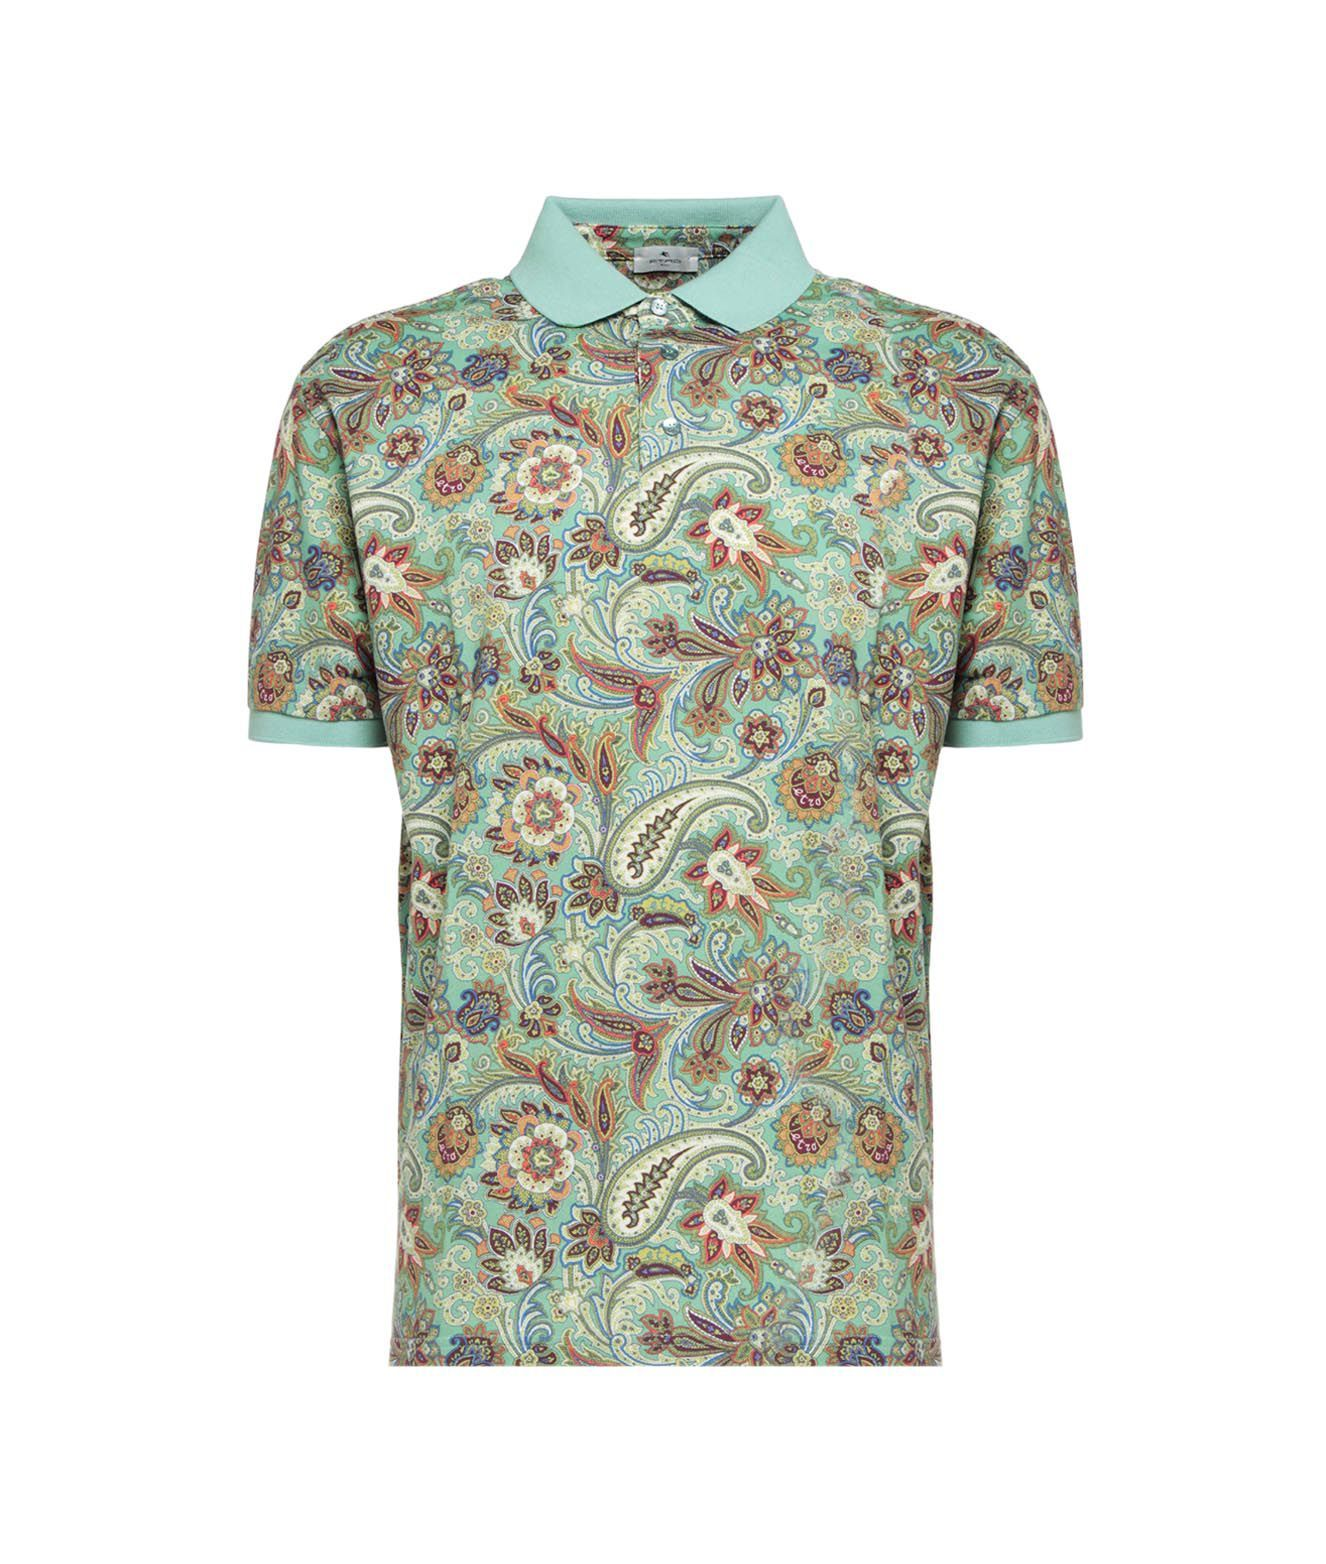 Etro Shirts ETRO MEN'S 1Y800408311550 LIGHT BLUE OTHER MATERIALS POLO SHIRT